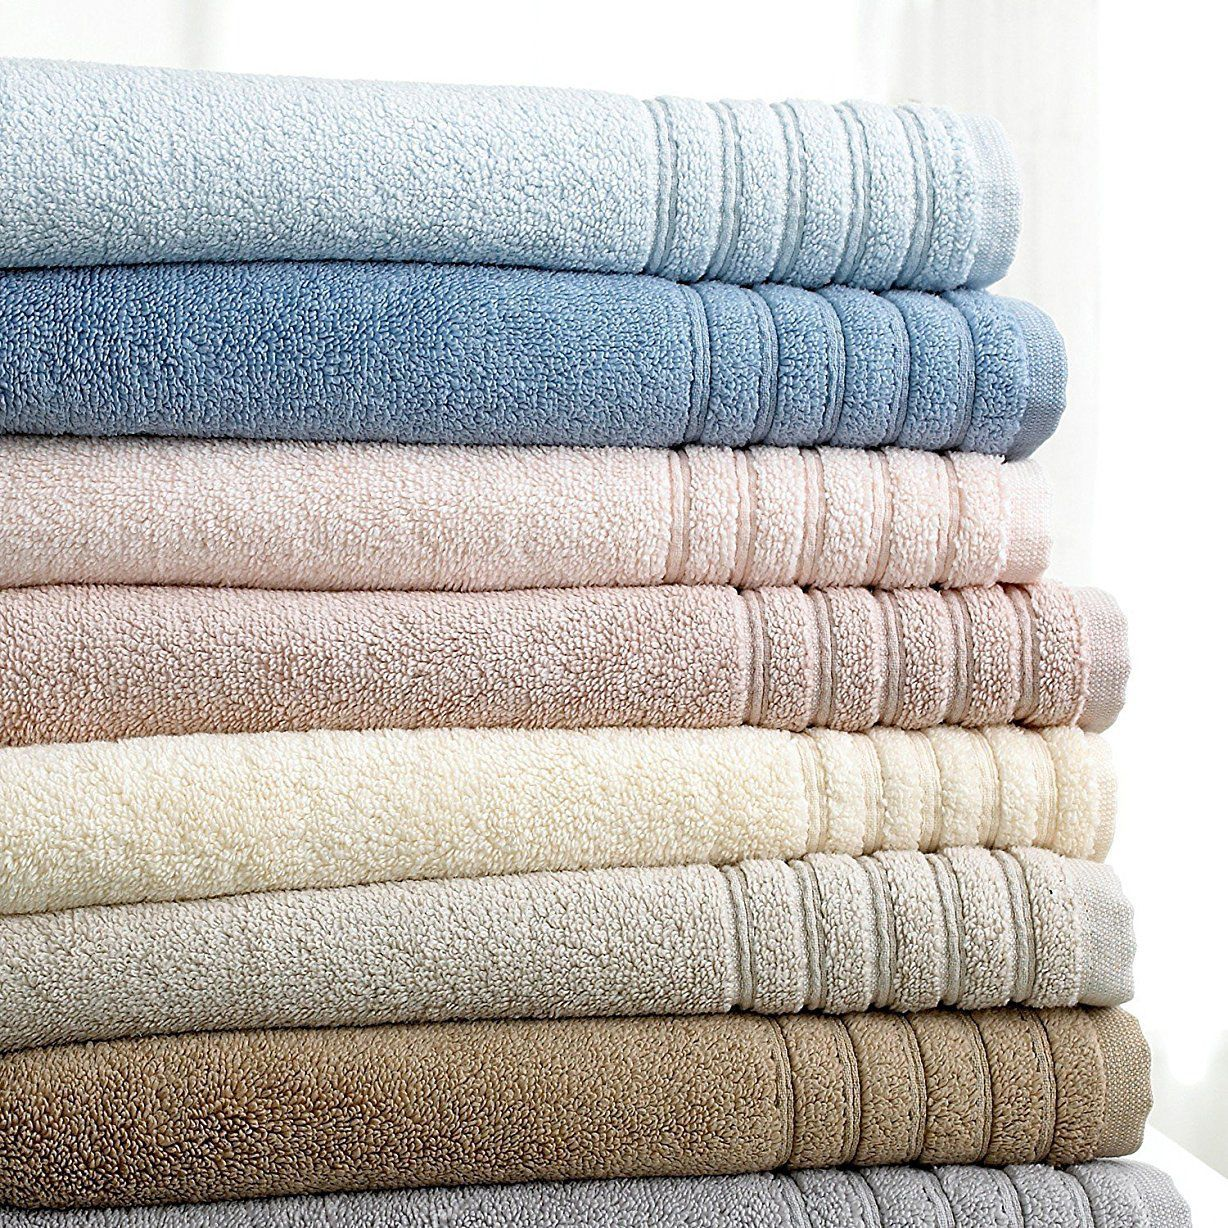 Hotel Collection Microcotton Towels Hotel Collection Towels